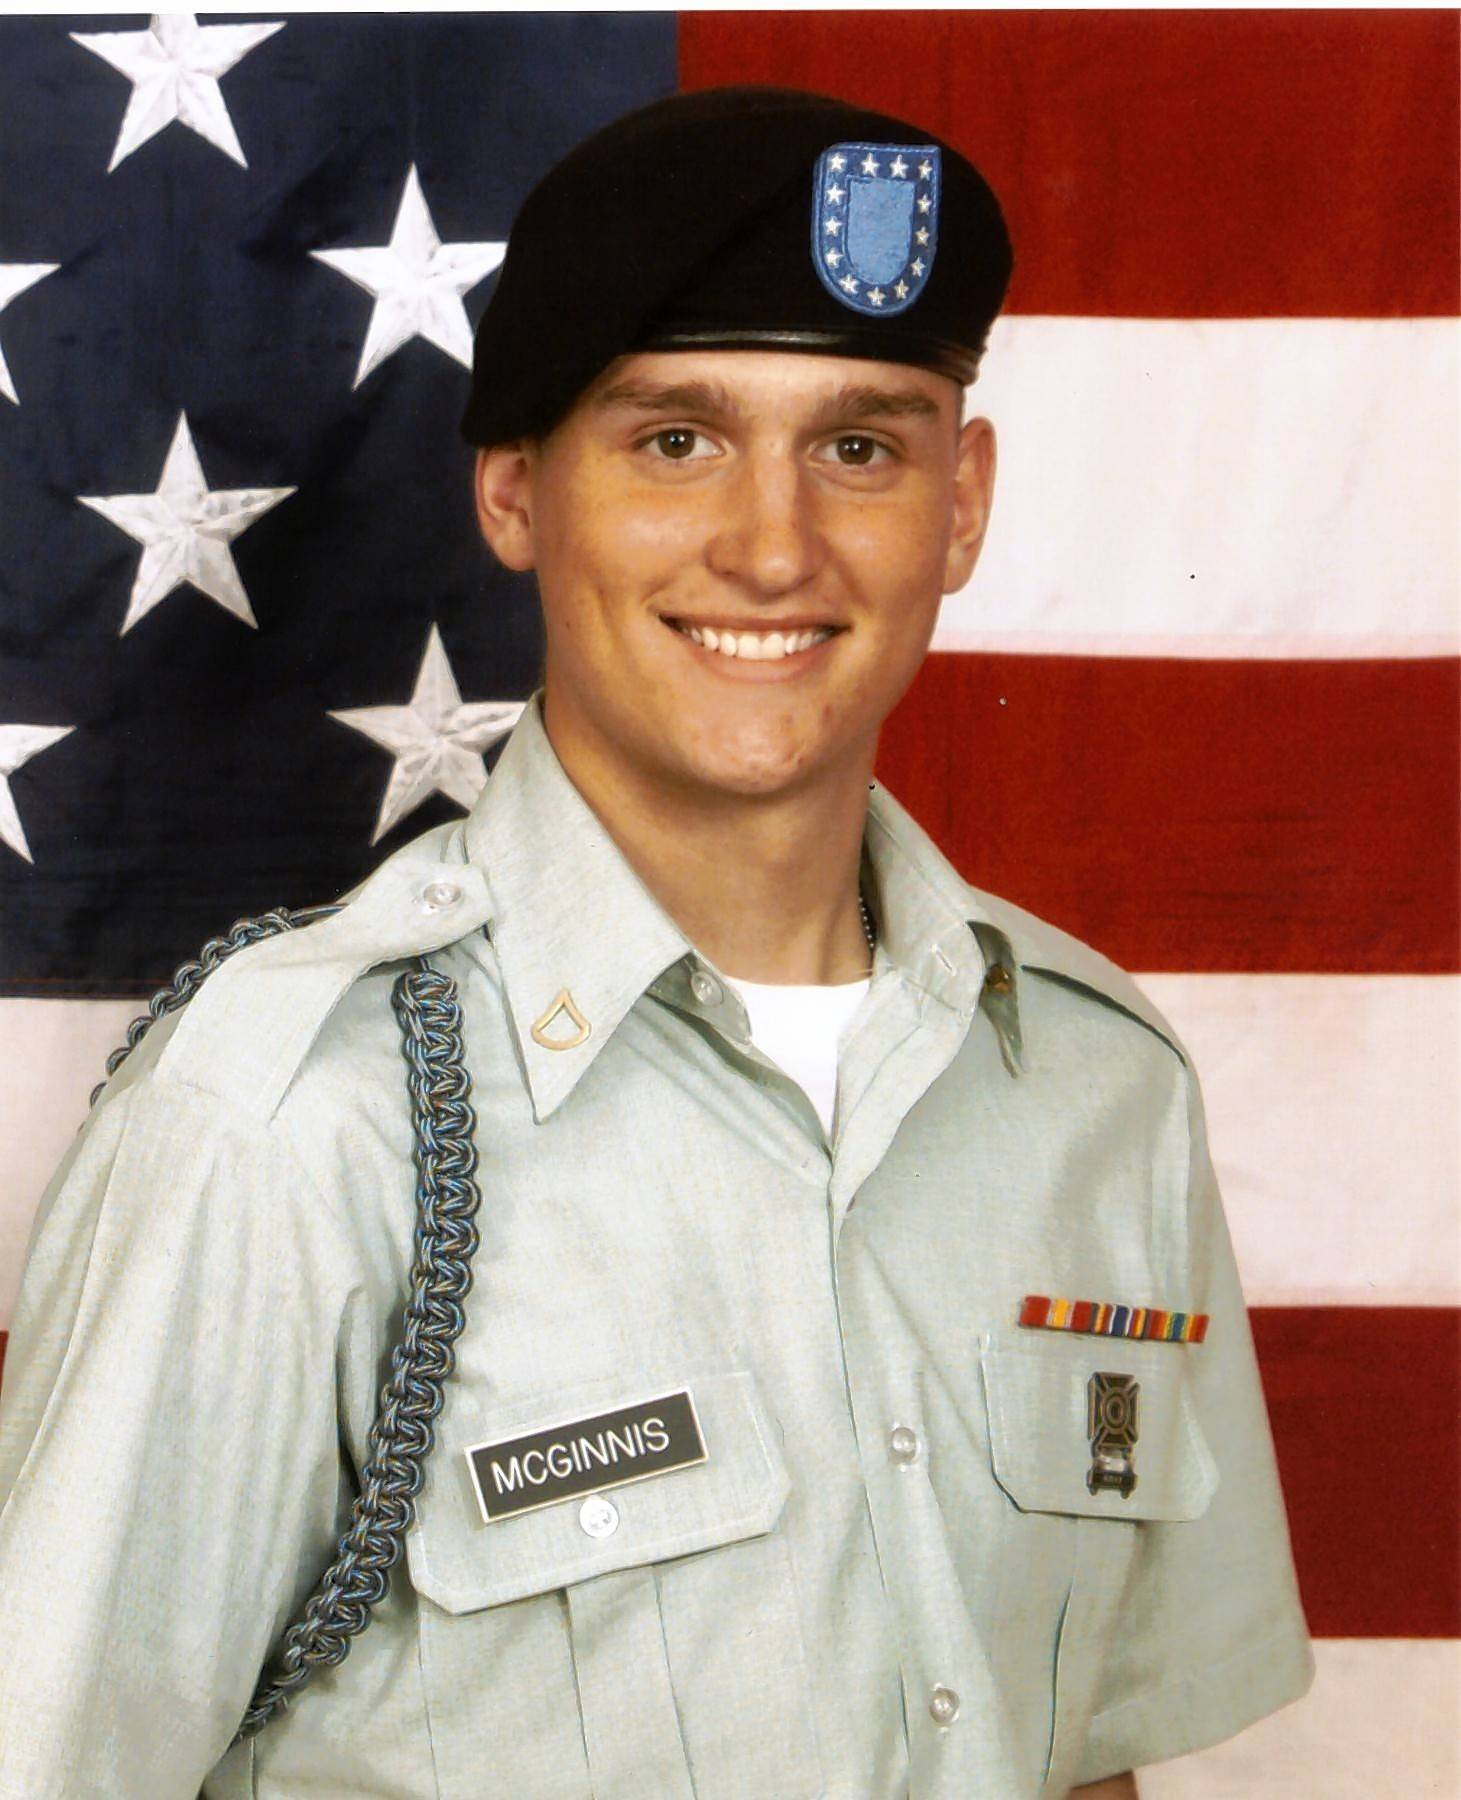 Pfc. Ross A. McGinnis